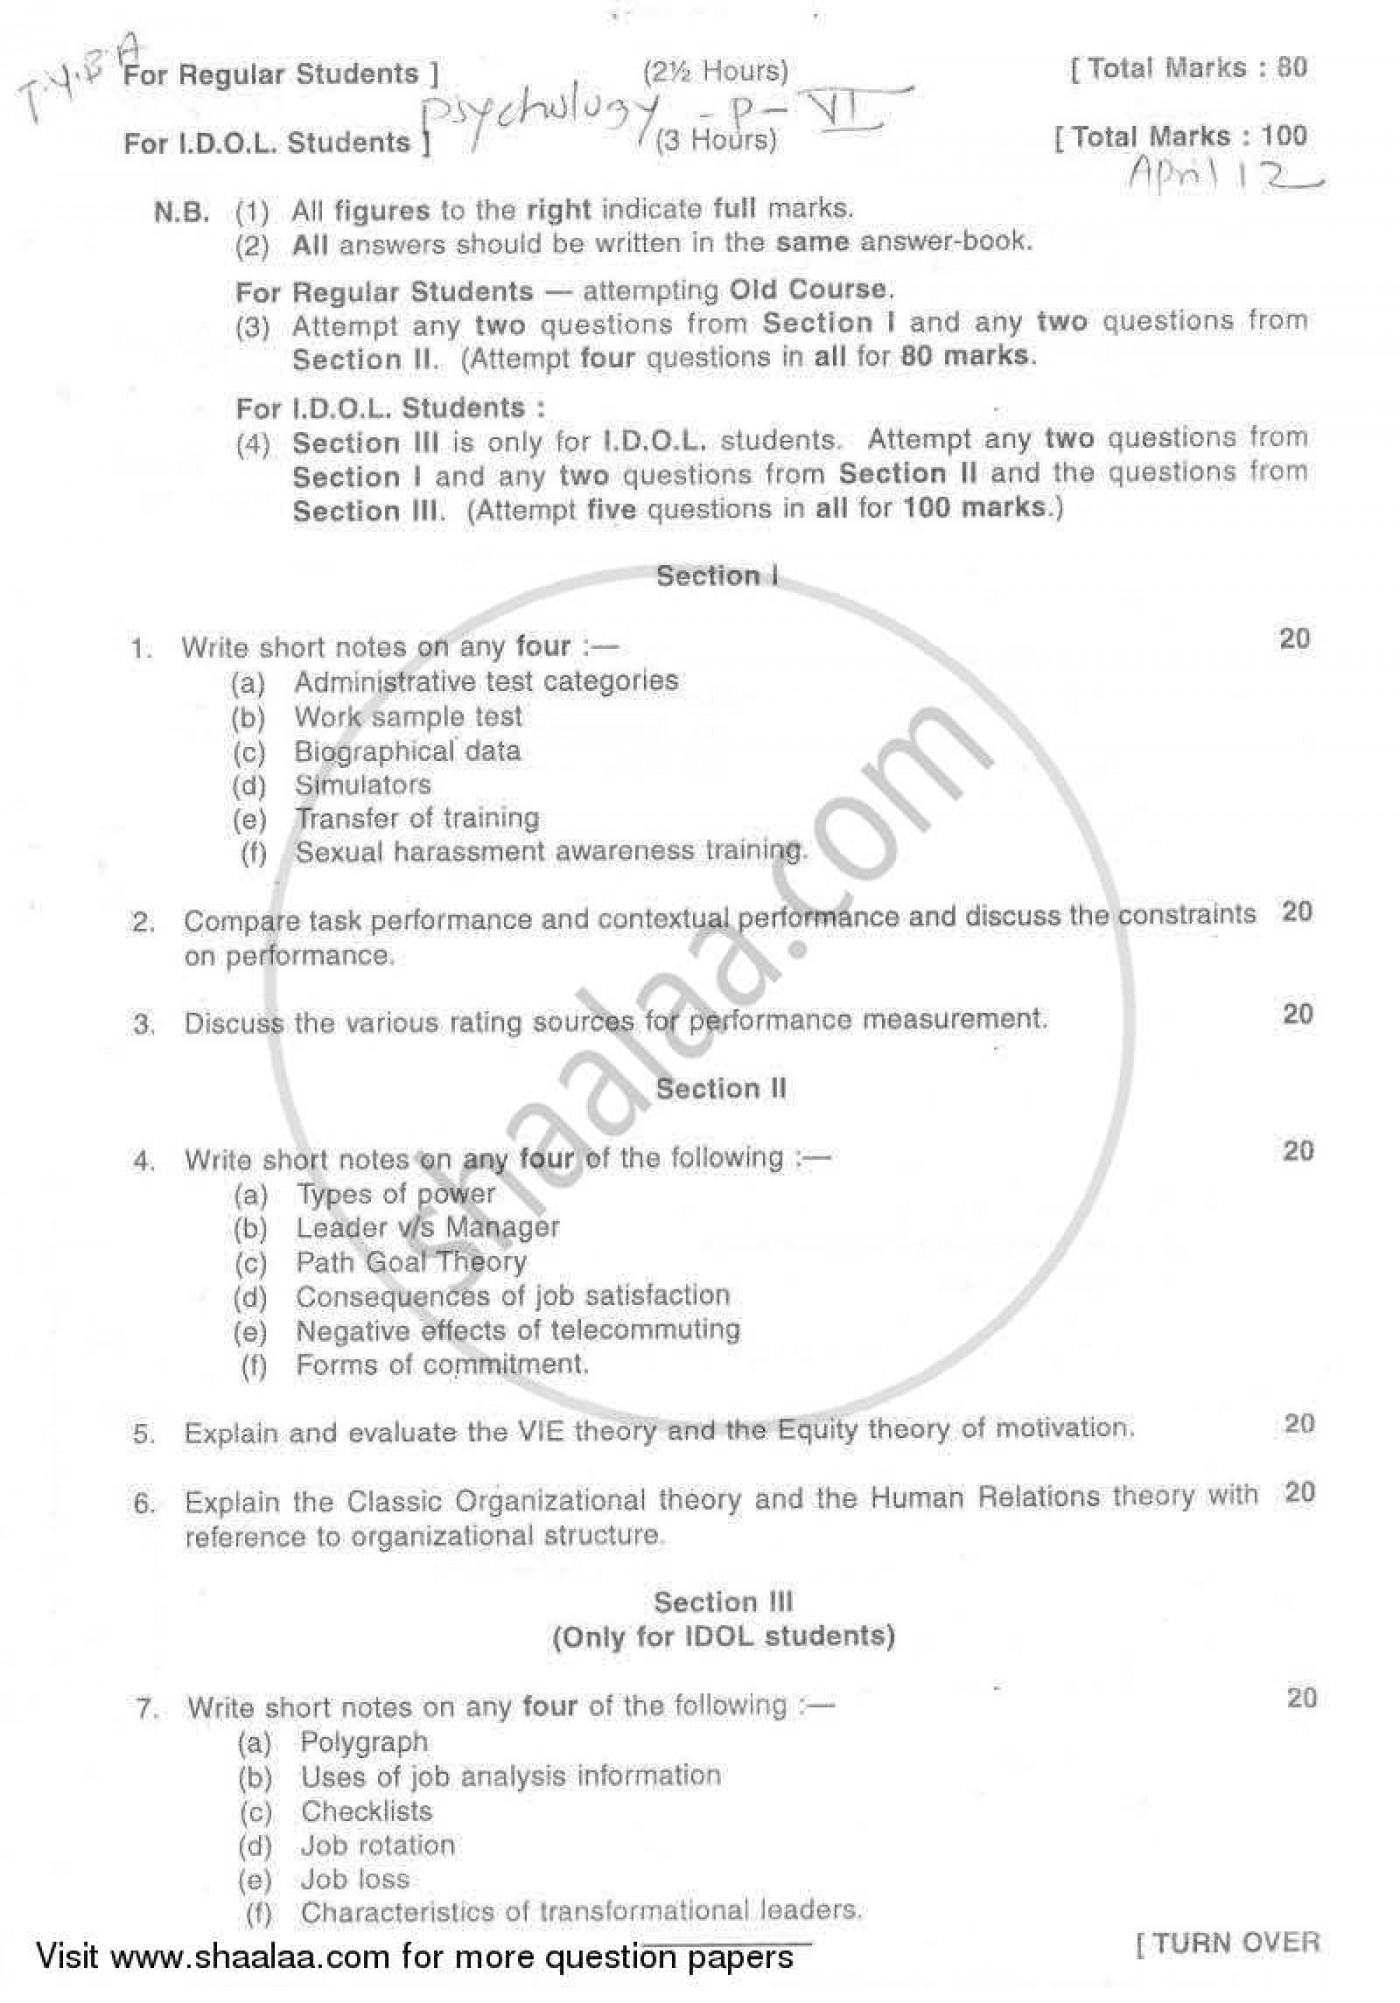 017 Psychologyearch Paper On Dreams University Of Mumbai Bachelor Industrial Organizational T Y Yearly Pattern Semester Tyba 2011 29a03925dfc524f2aa4cb10e4d3da996a Singular Psychology Research Topics 1400